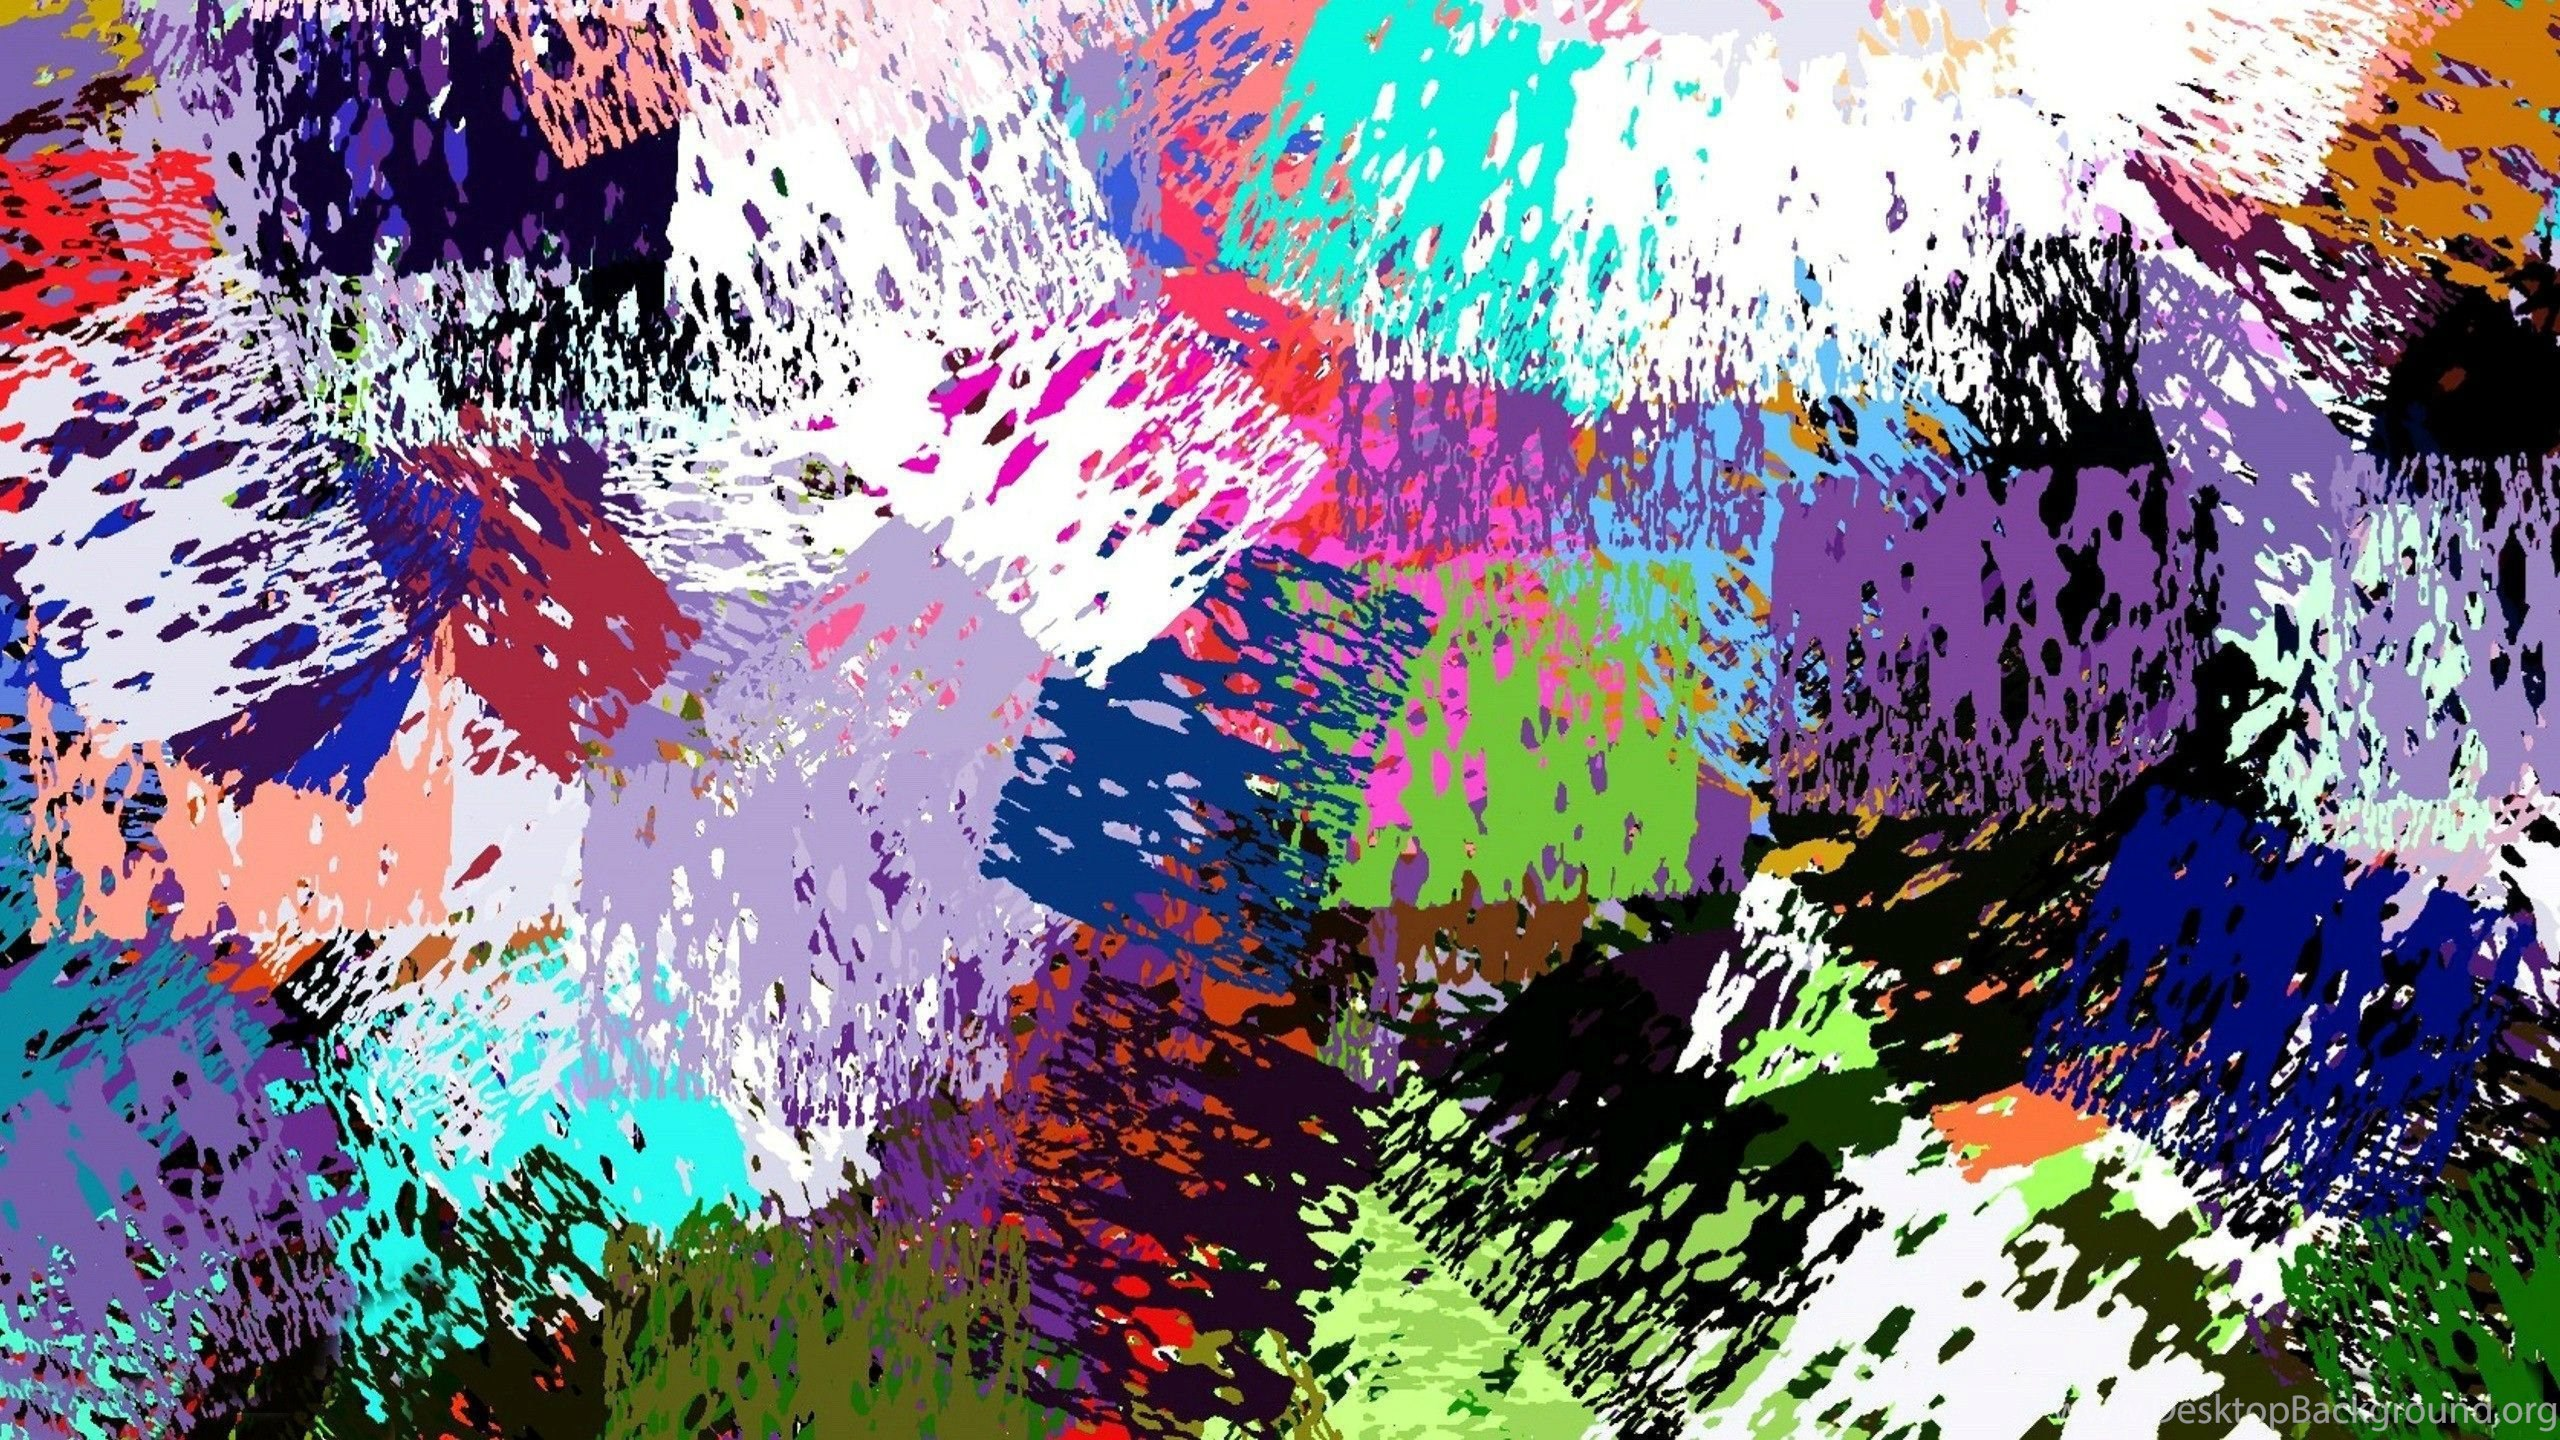 Beautiful Colorful Abstract Painting HD Desktop Background